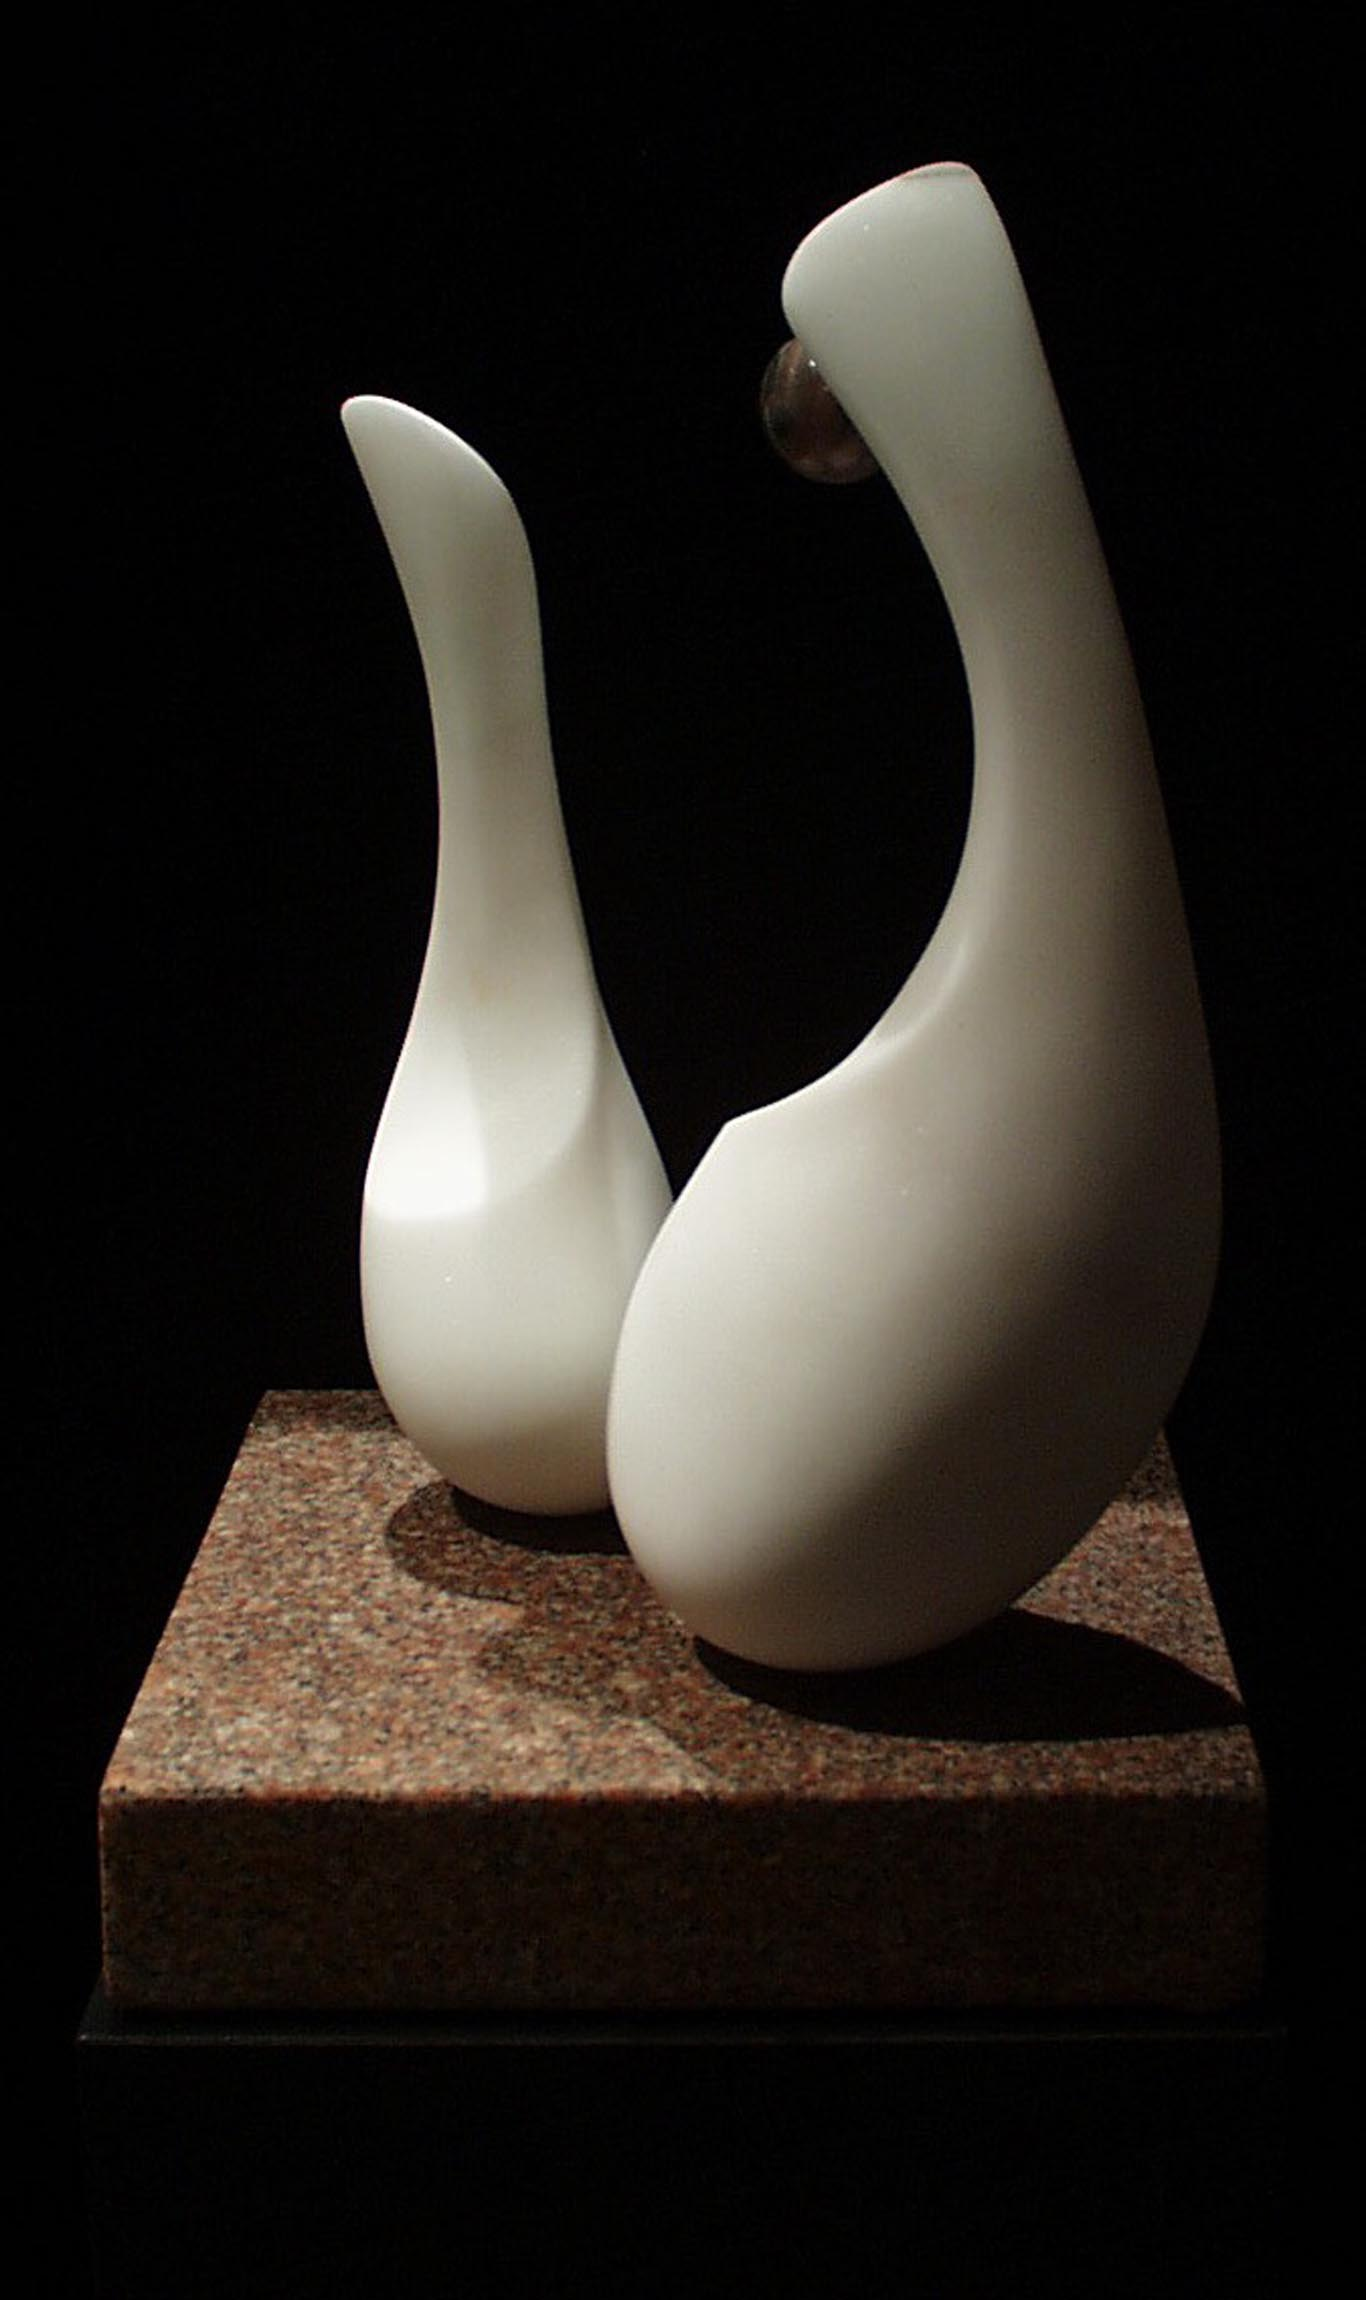 michael binkley sculptor stone sculpture artist abstract marble statue vancouver canada